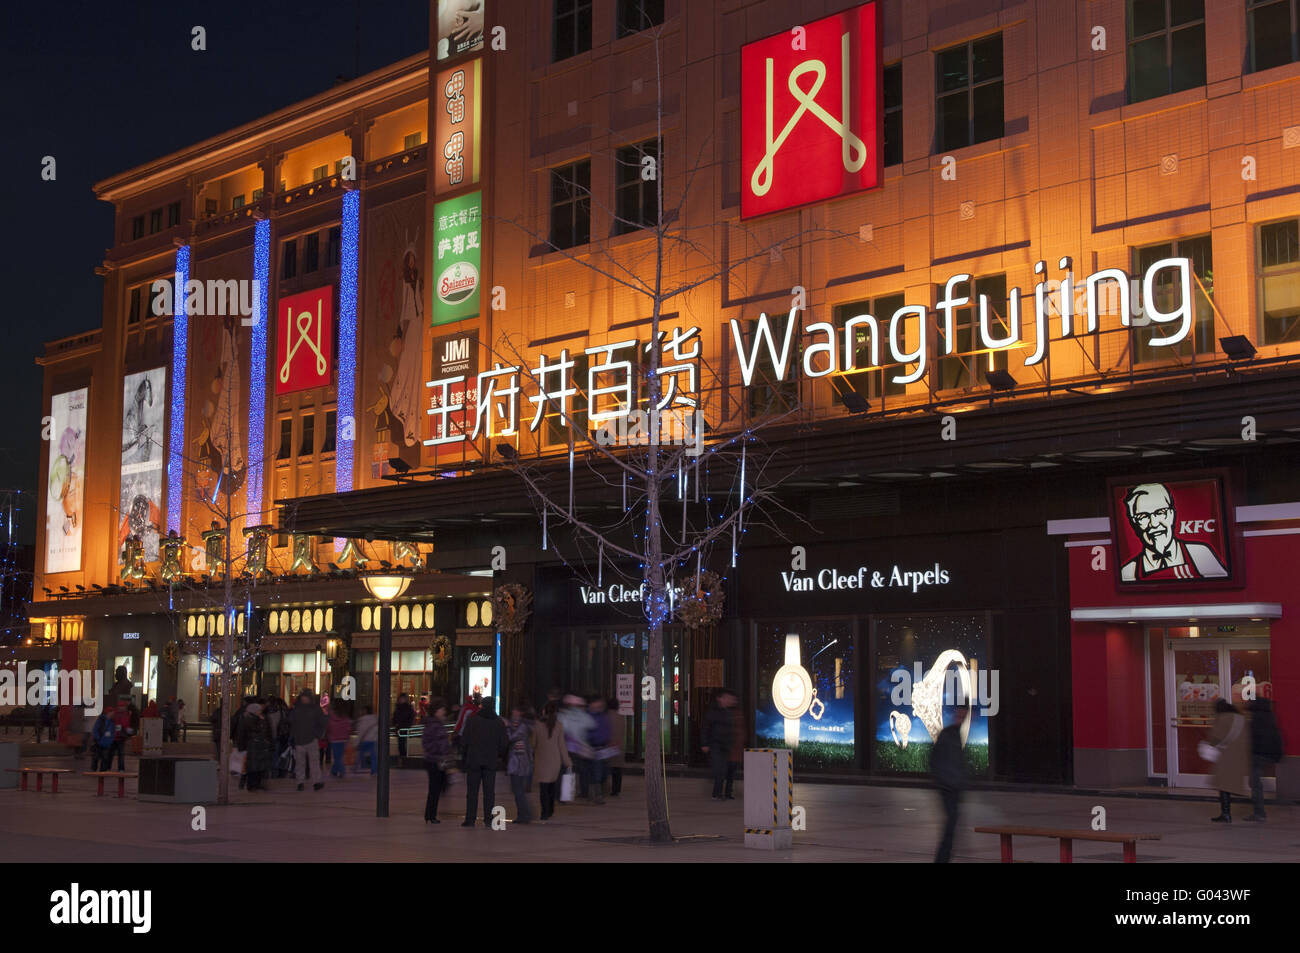 Beijing Department Store in night illumination - Stock Image